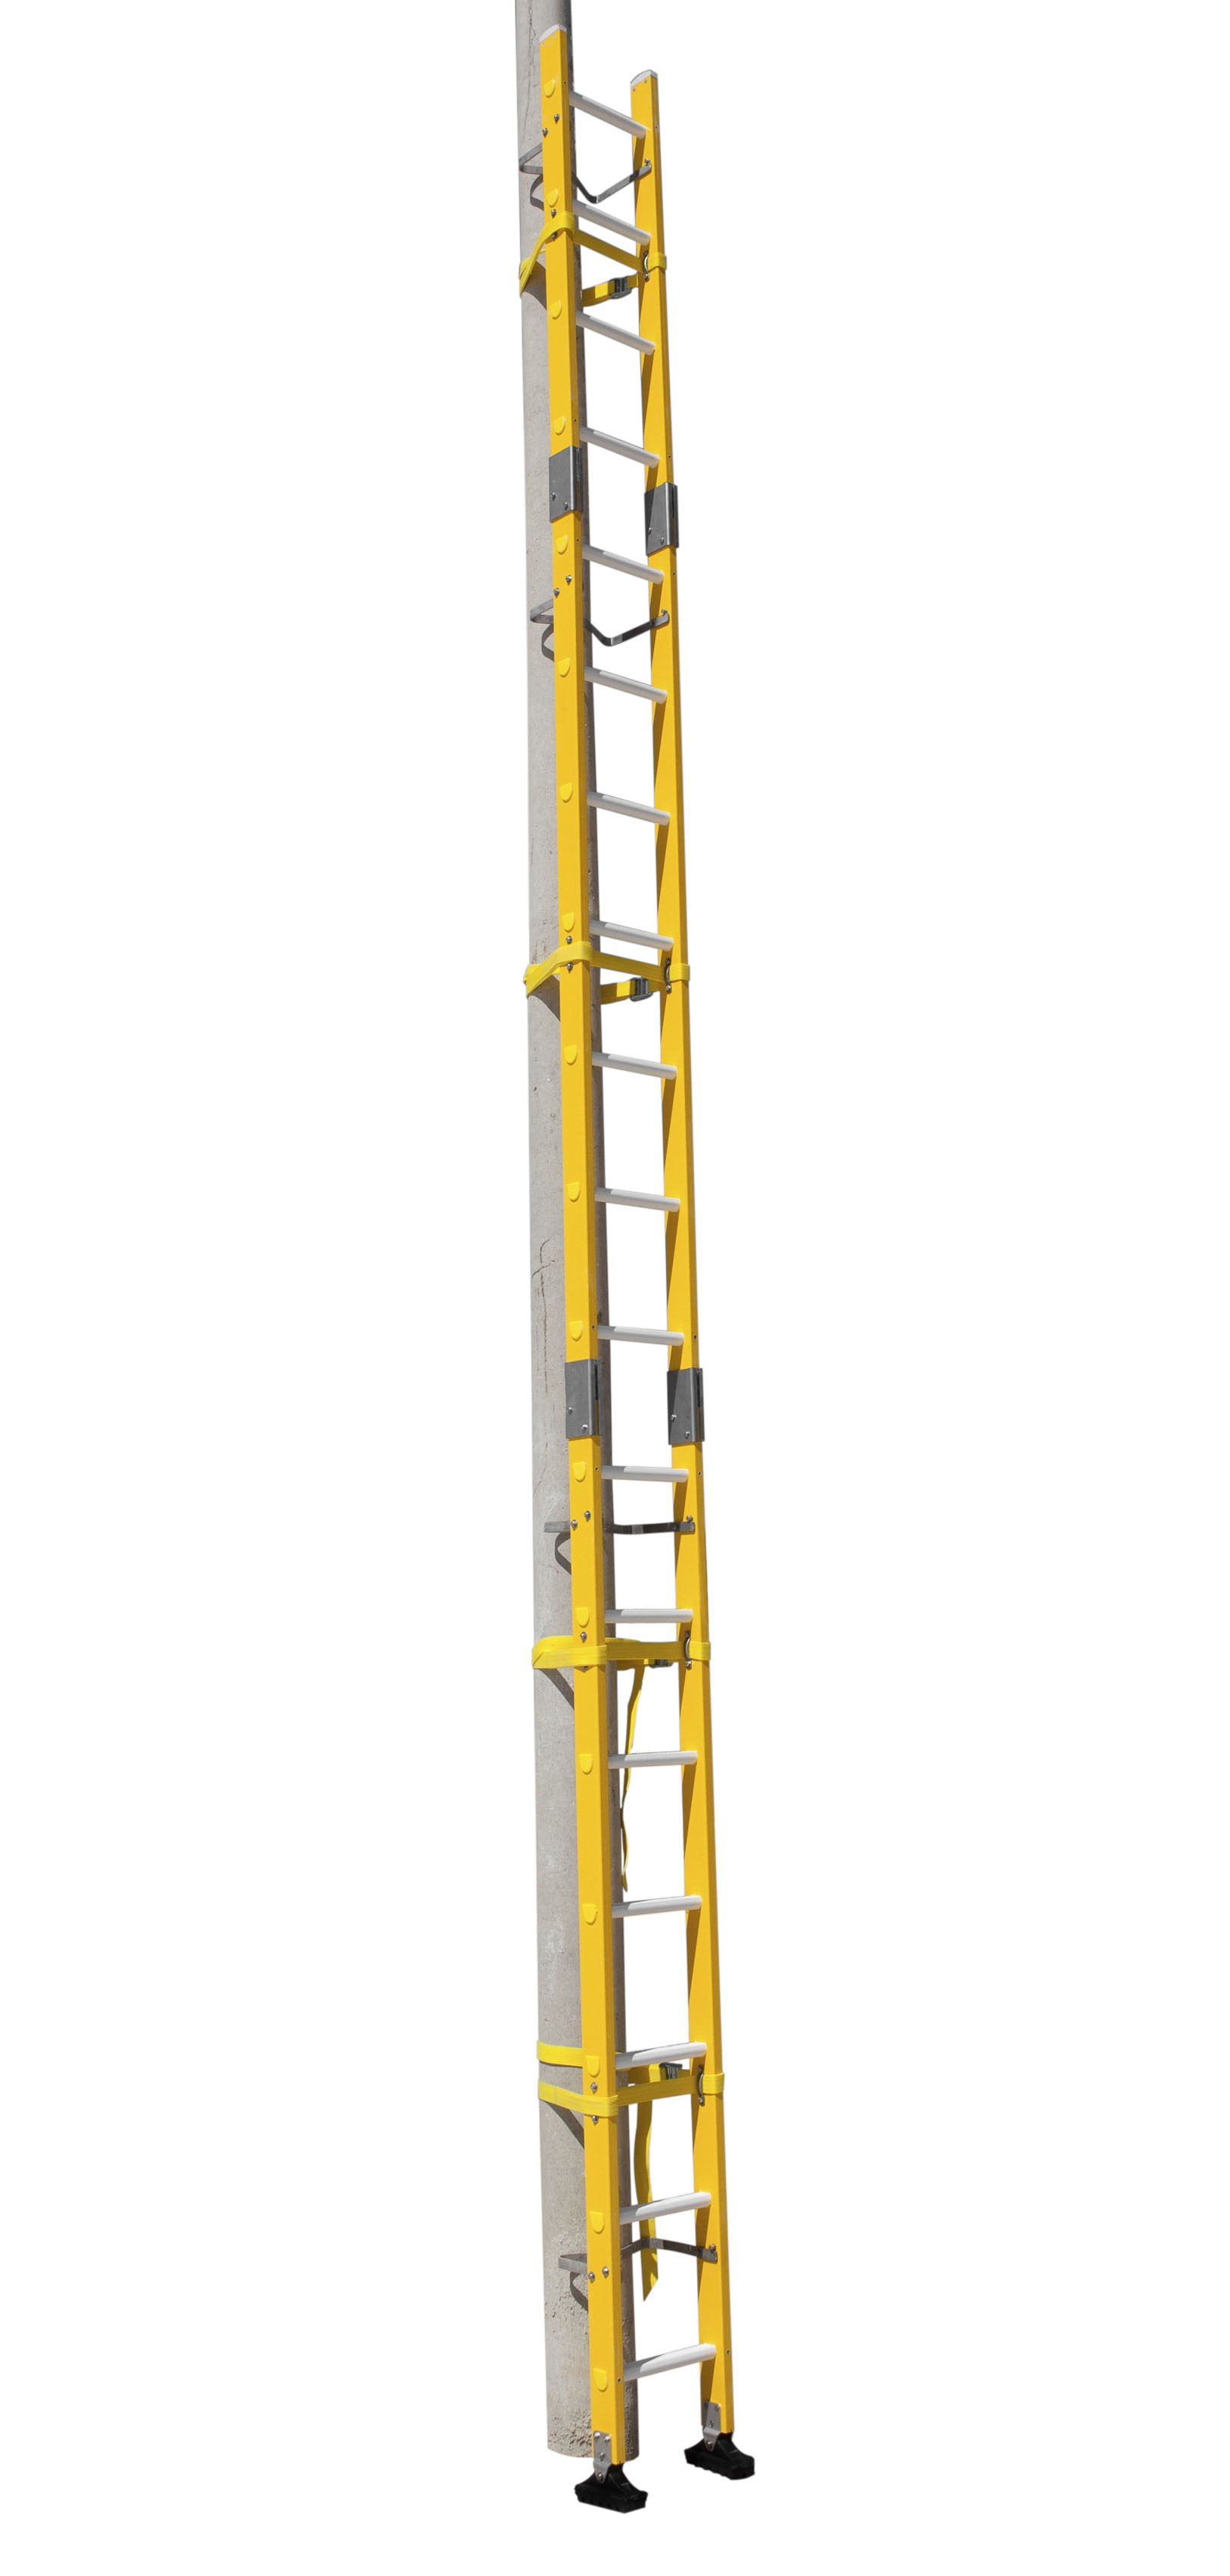 FIBREGLASS LADDER WITH PLUG-IN SECTIONS FOR POLES